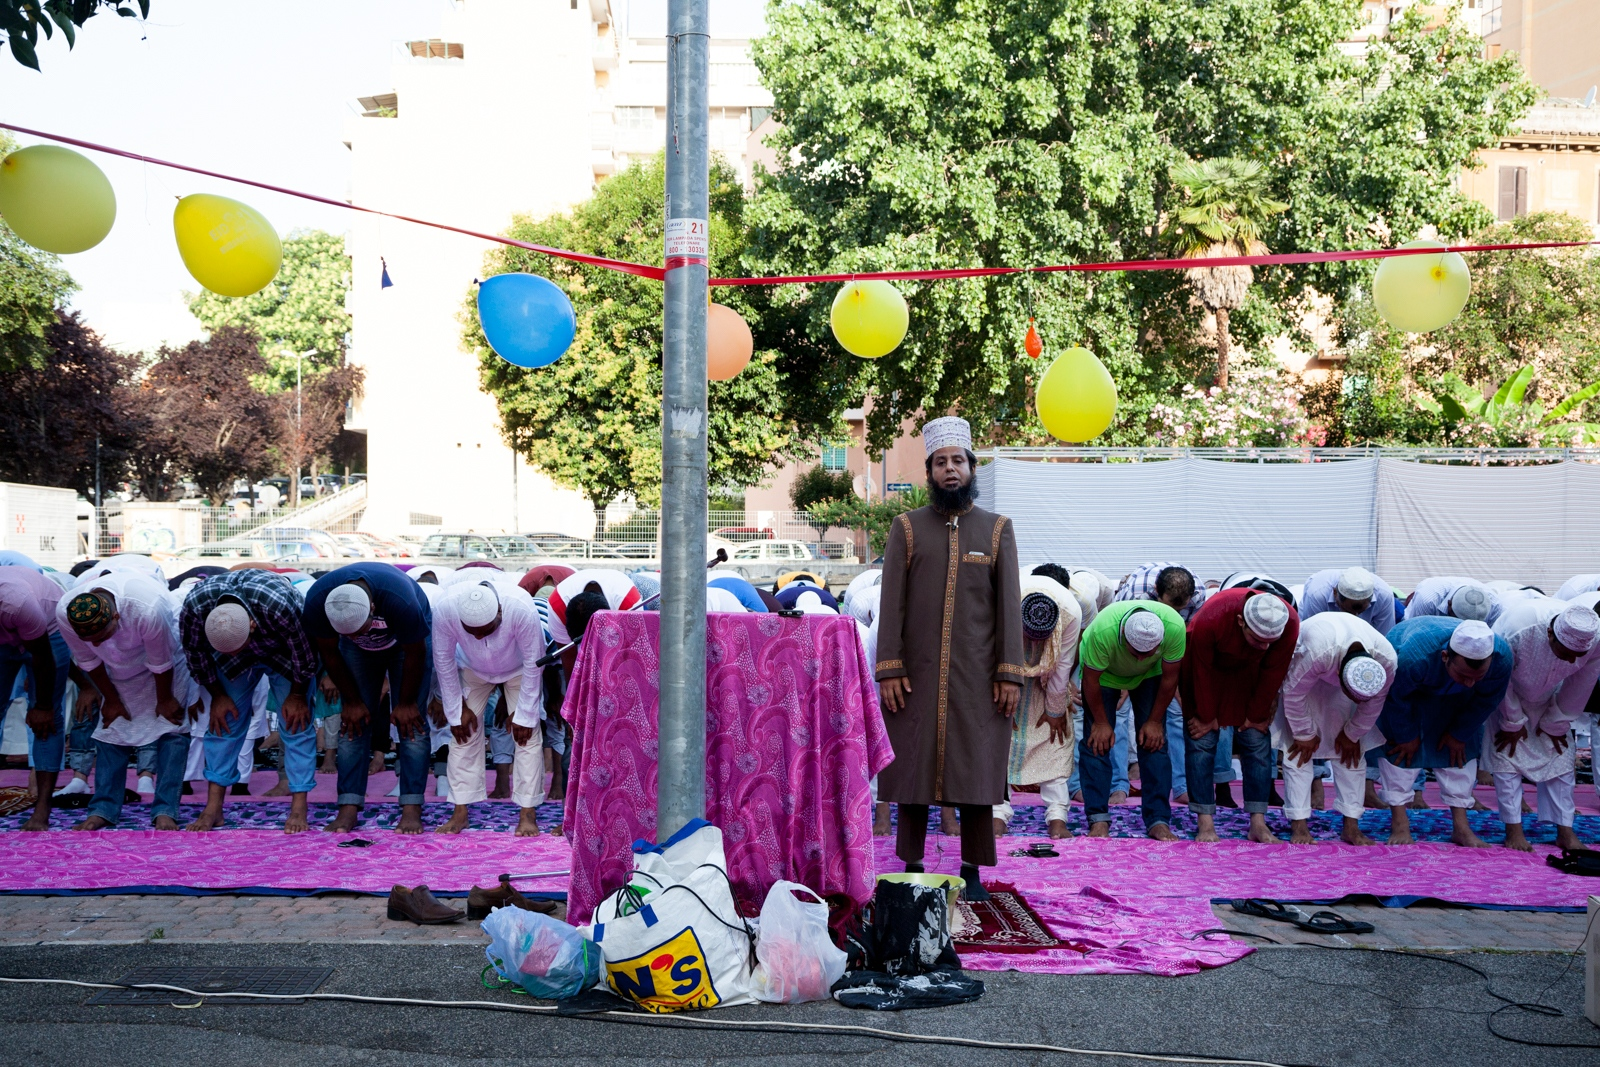 July 6, 2016 - Members of the Bangladeshi community of Rome perform the Eid al-Fitr prayer, that marks the end of Ramadan, in a public square in Torpignattara, a working class neighborhood in the southeastern suburbs of Rome.